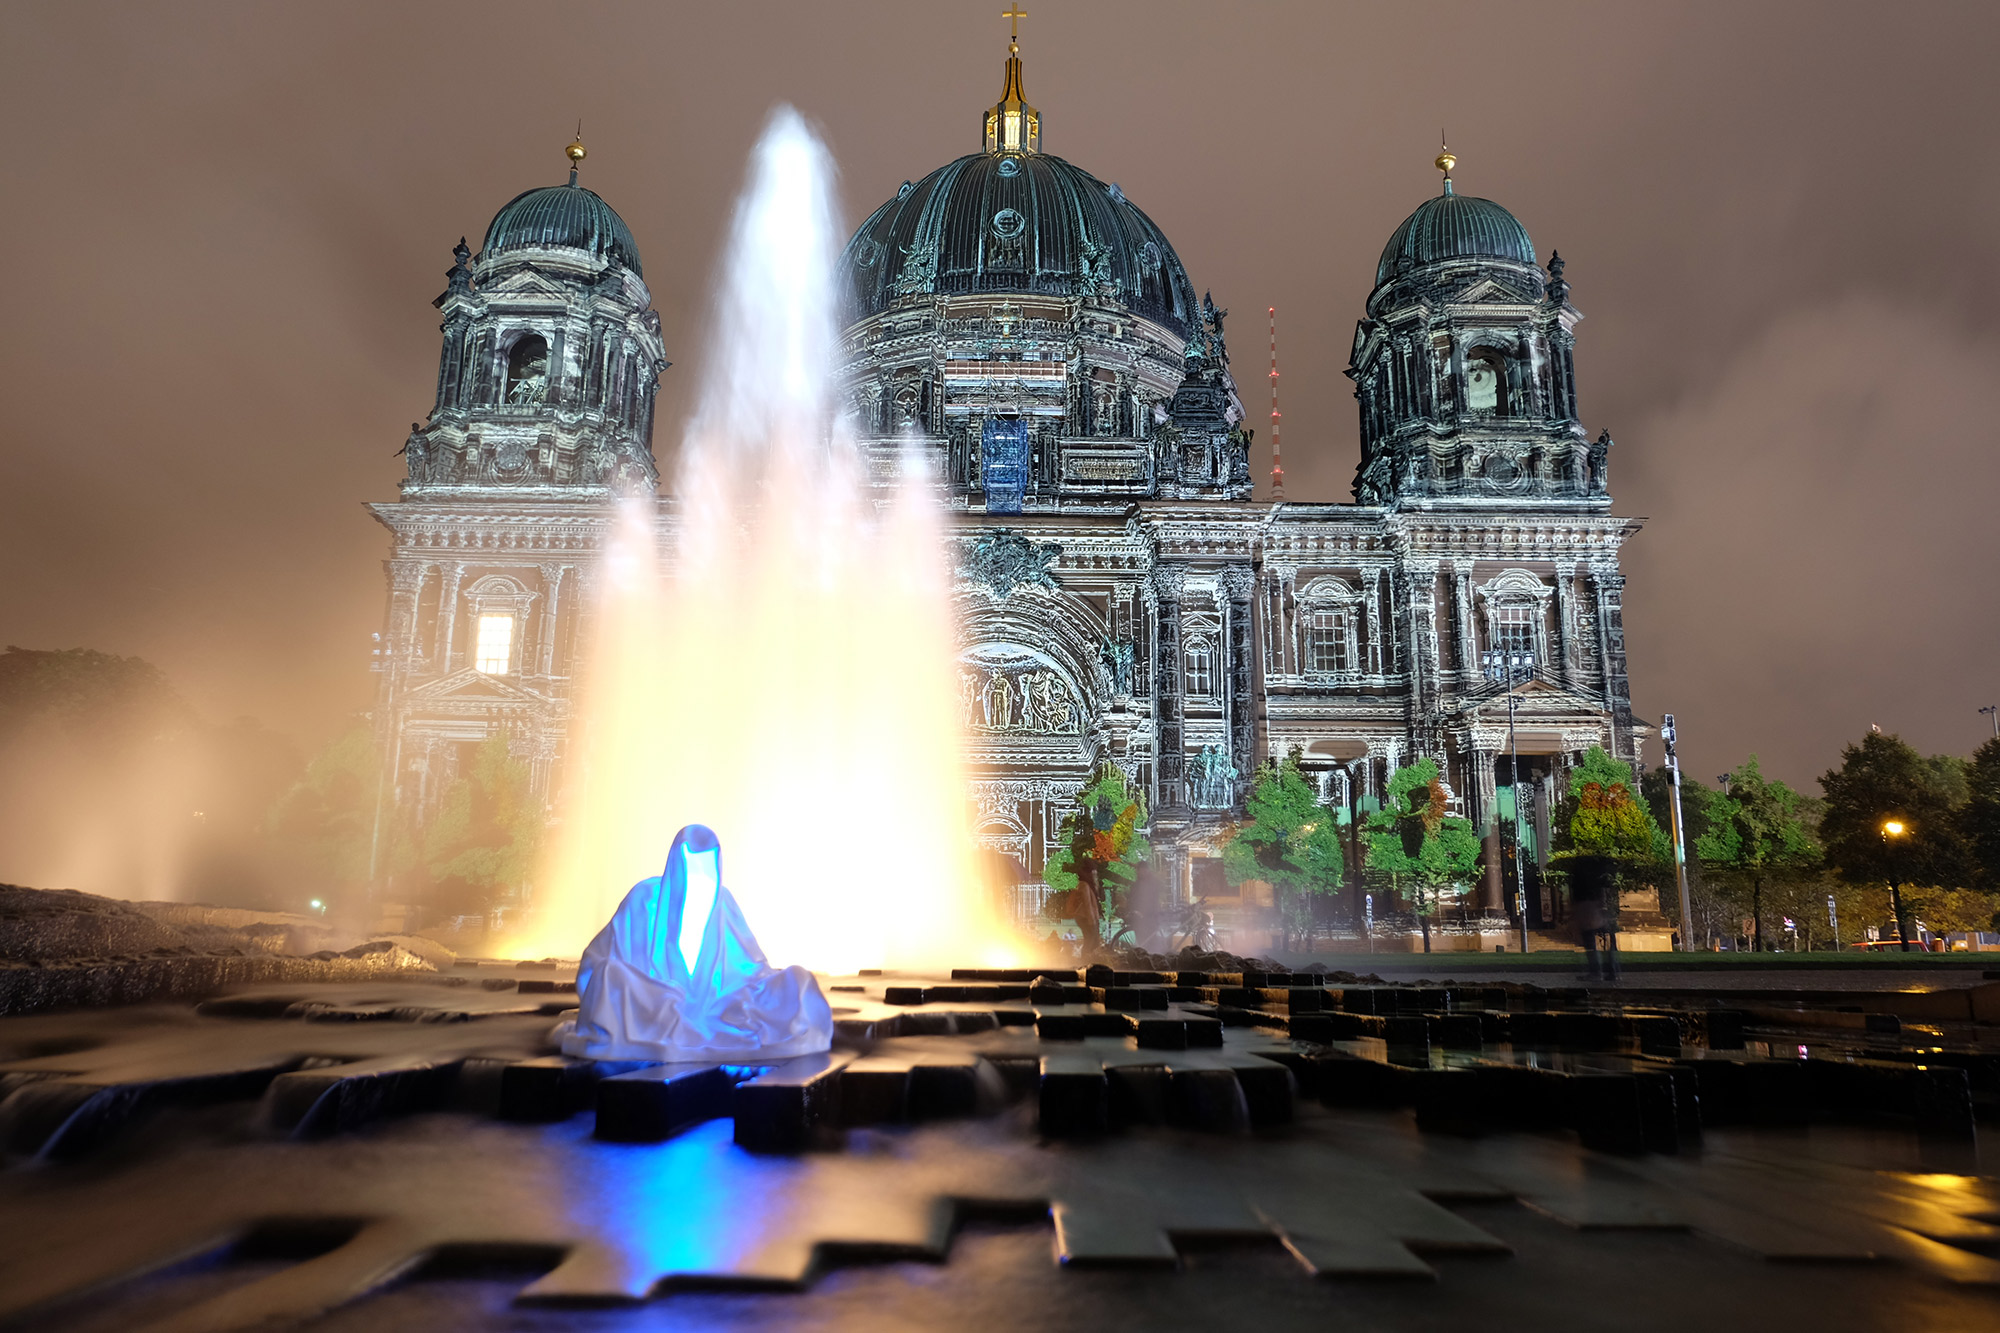 festival-of-lights-berlin-guardians-of-time-manfred-kielnhofer-lumina-light-contemporary-art-design-statue-sculpture-fineart-ghost-faceless-no-face-9315